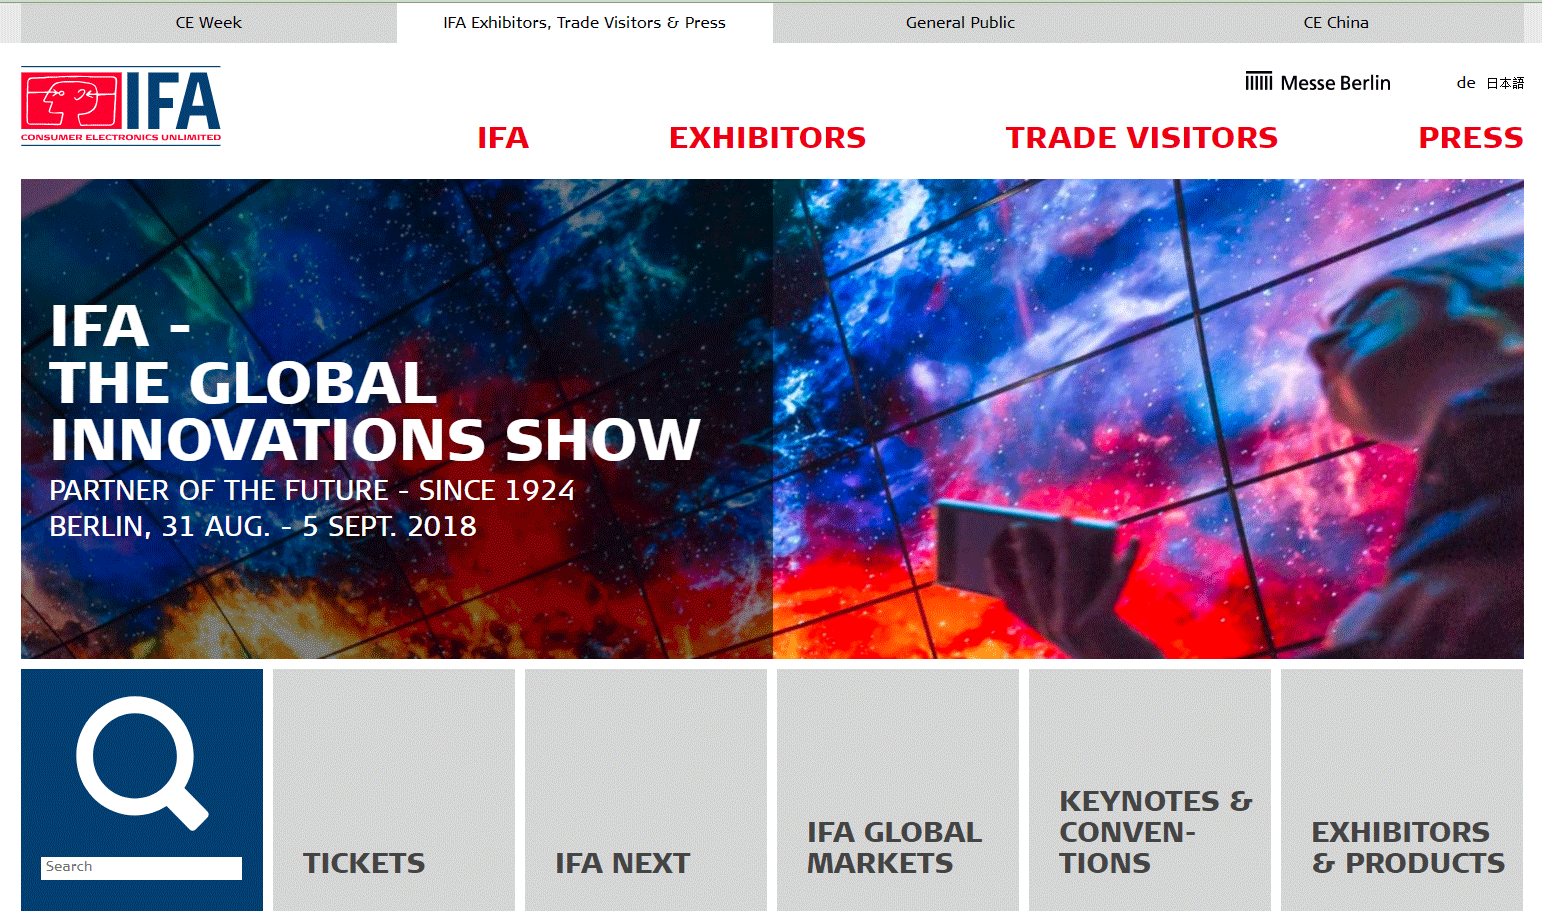 IFA website